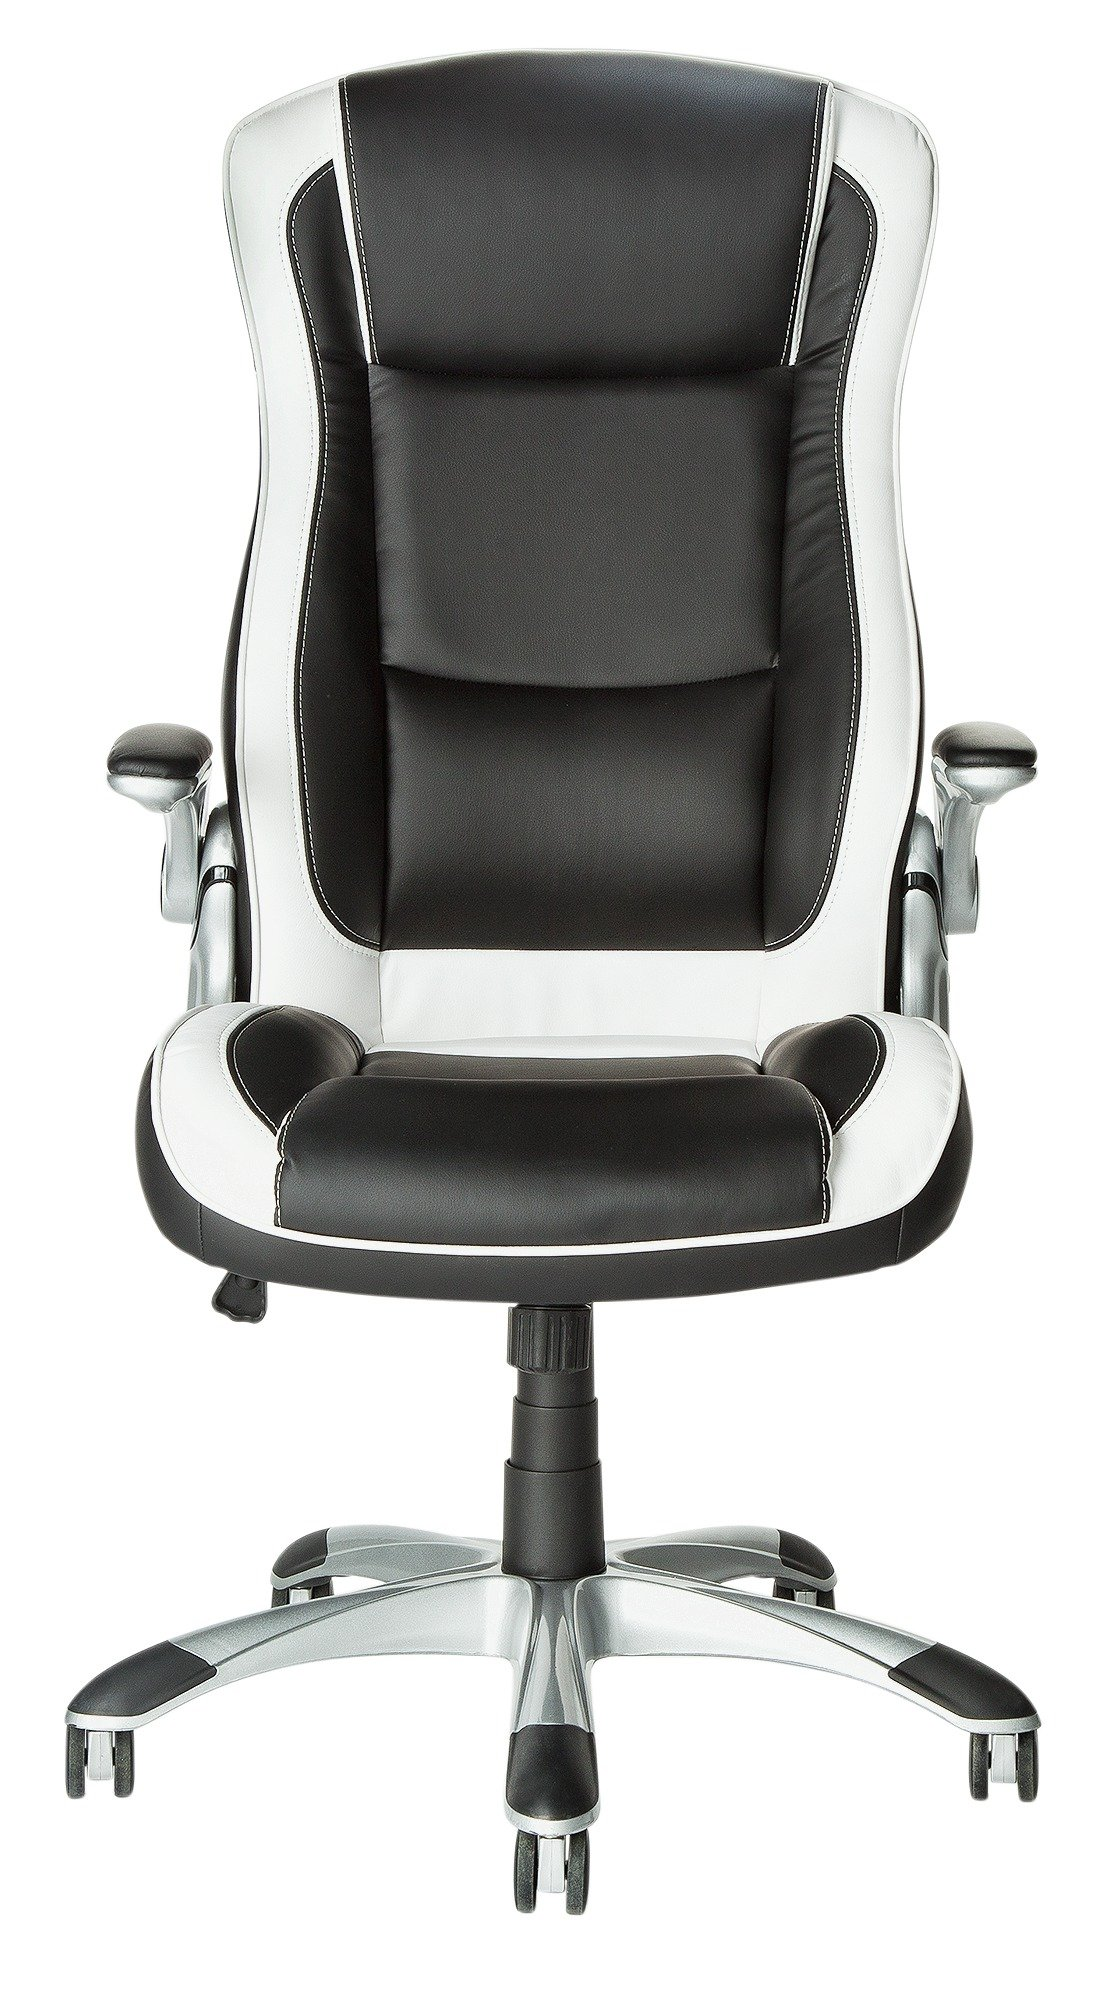 Buy HOME Dexter Height Adjustable Office Chair BlackWhite at